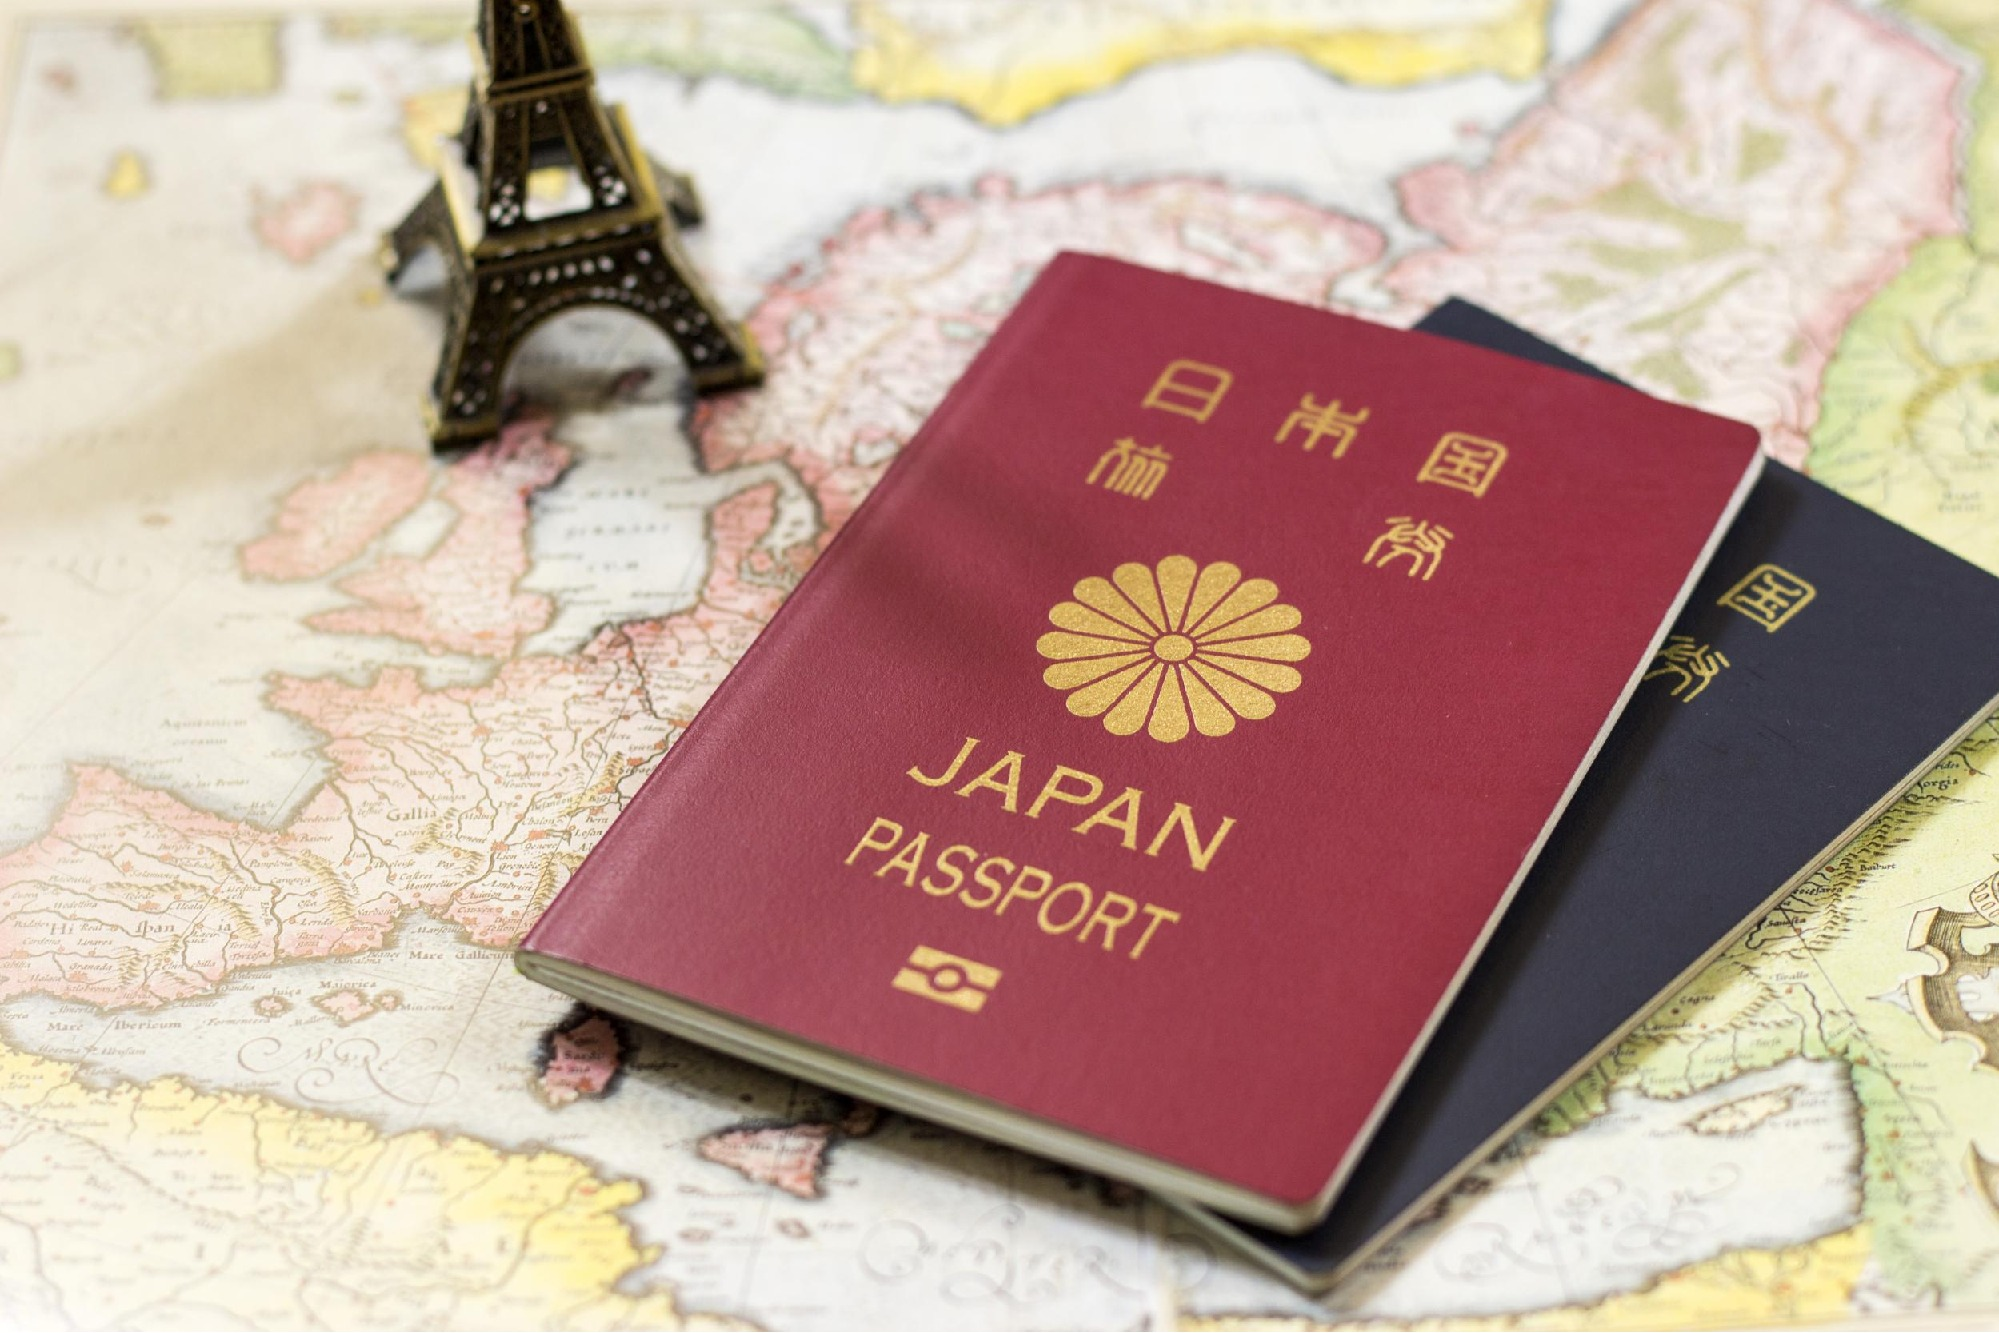 Most powerful passports 2021 list revealed India ranks 85